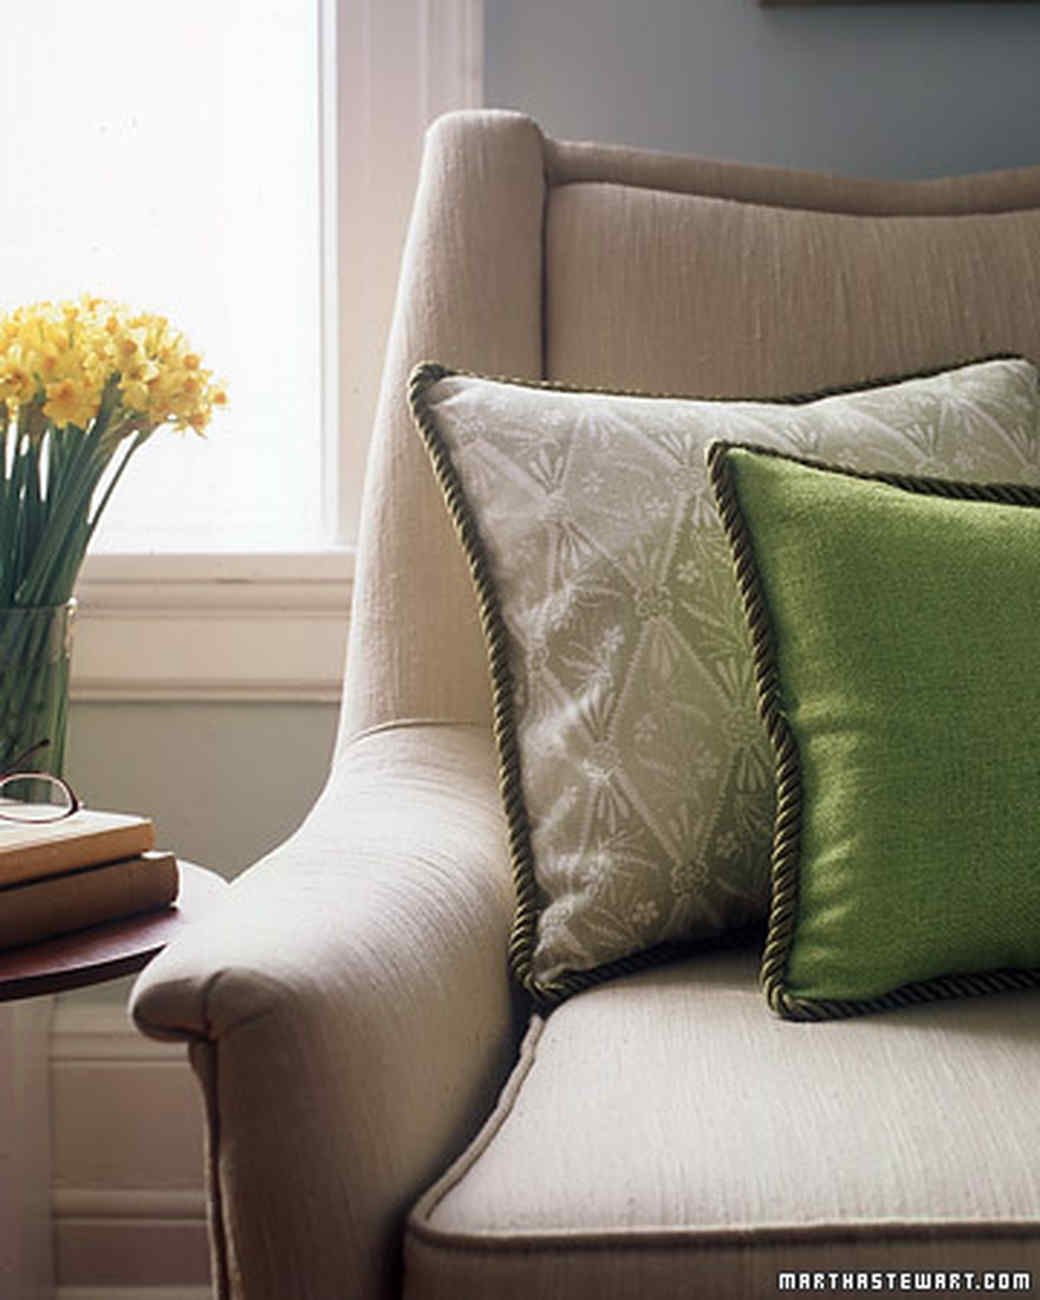 Brown Couch Pillow Ideas Decorative Pillows For Couch Ideas Architectural Design